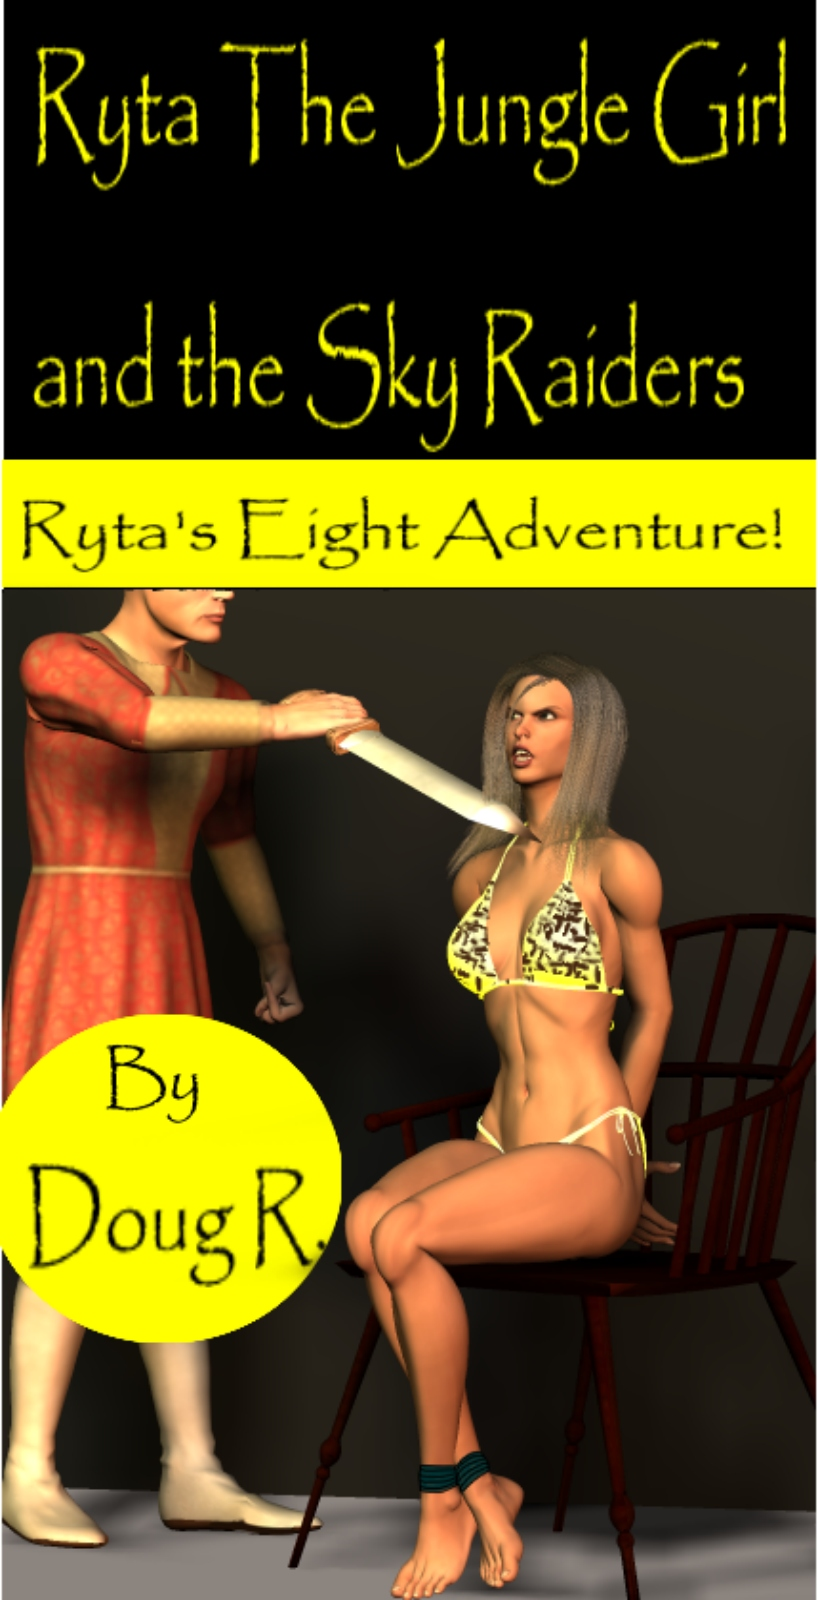 Ryta the Jungle Girl and the Sky Raiders